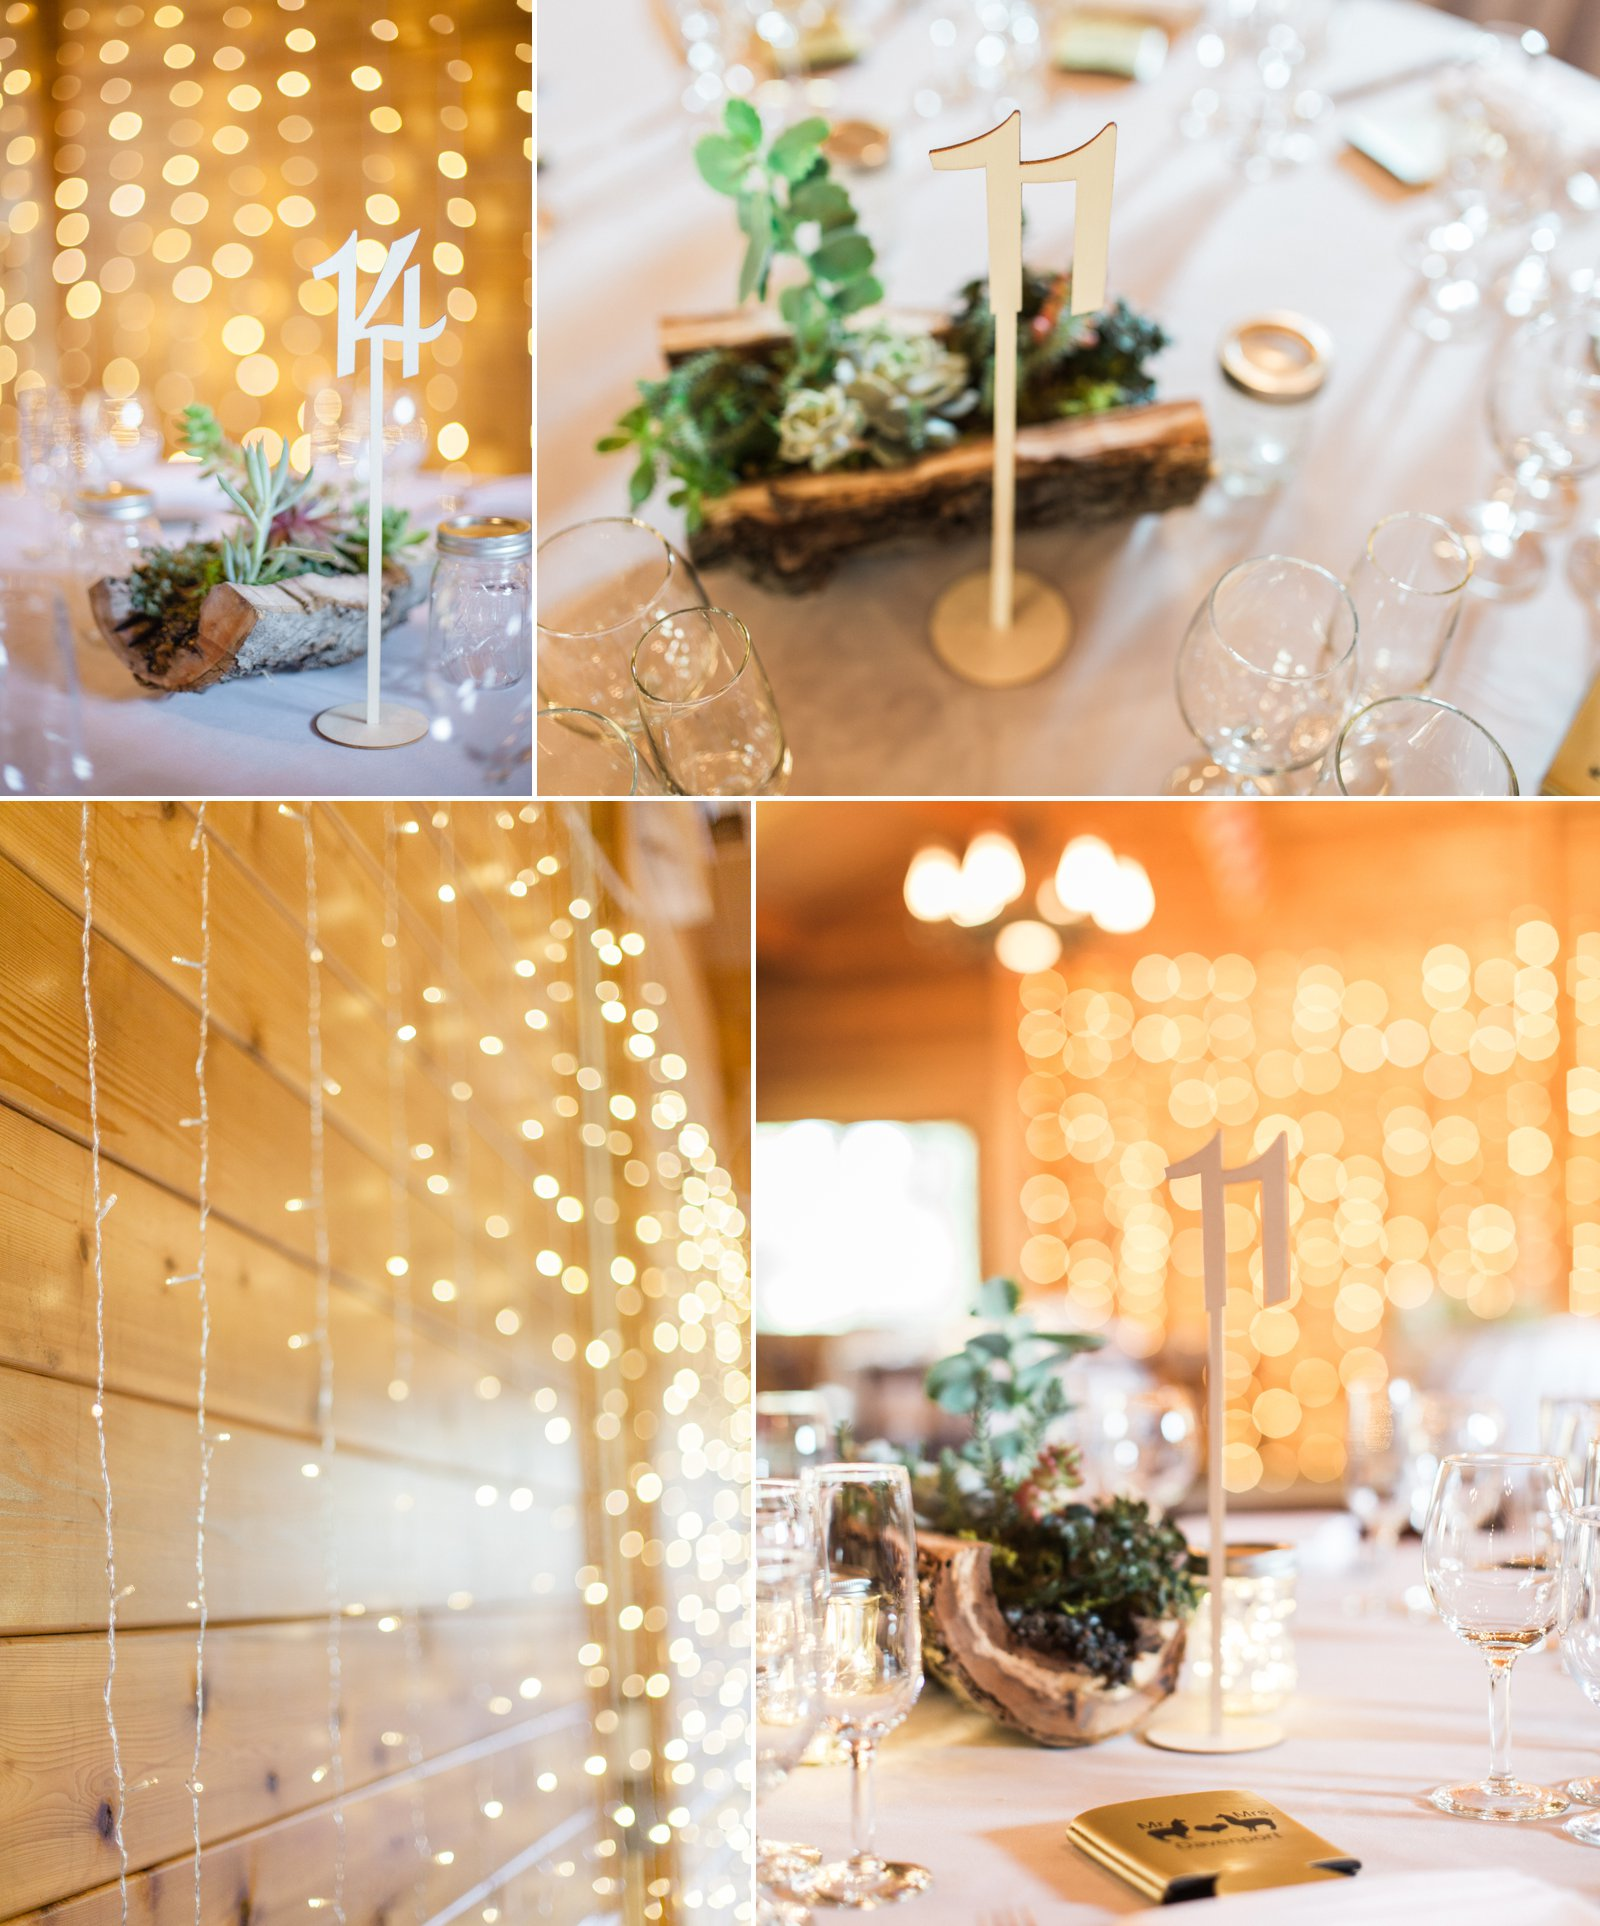 Green and gold reception elements for this Carpinteria wedding.